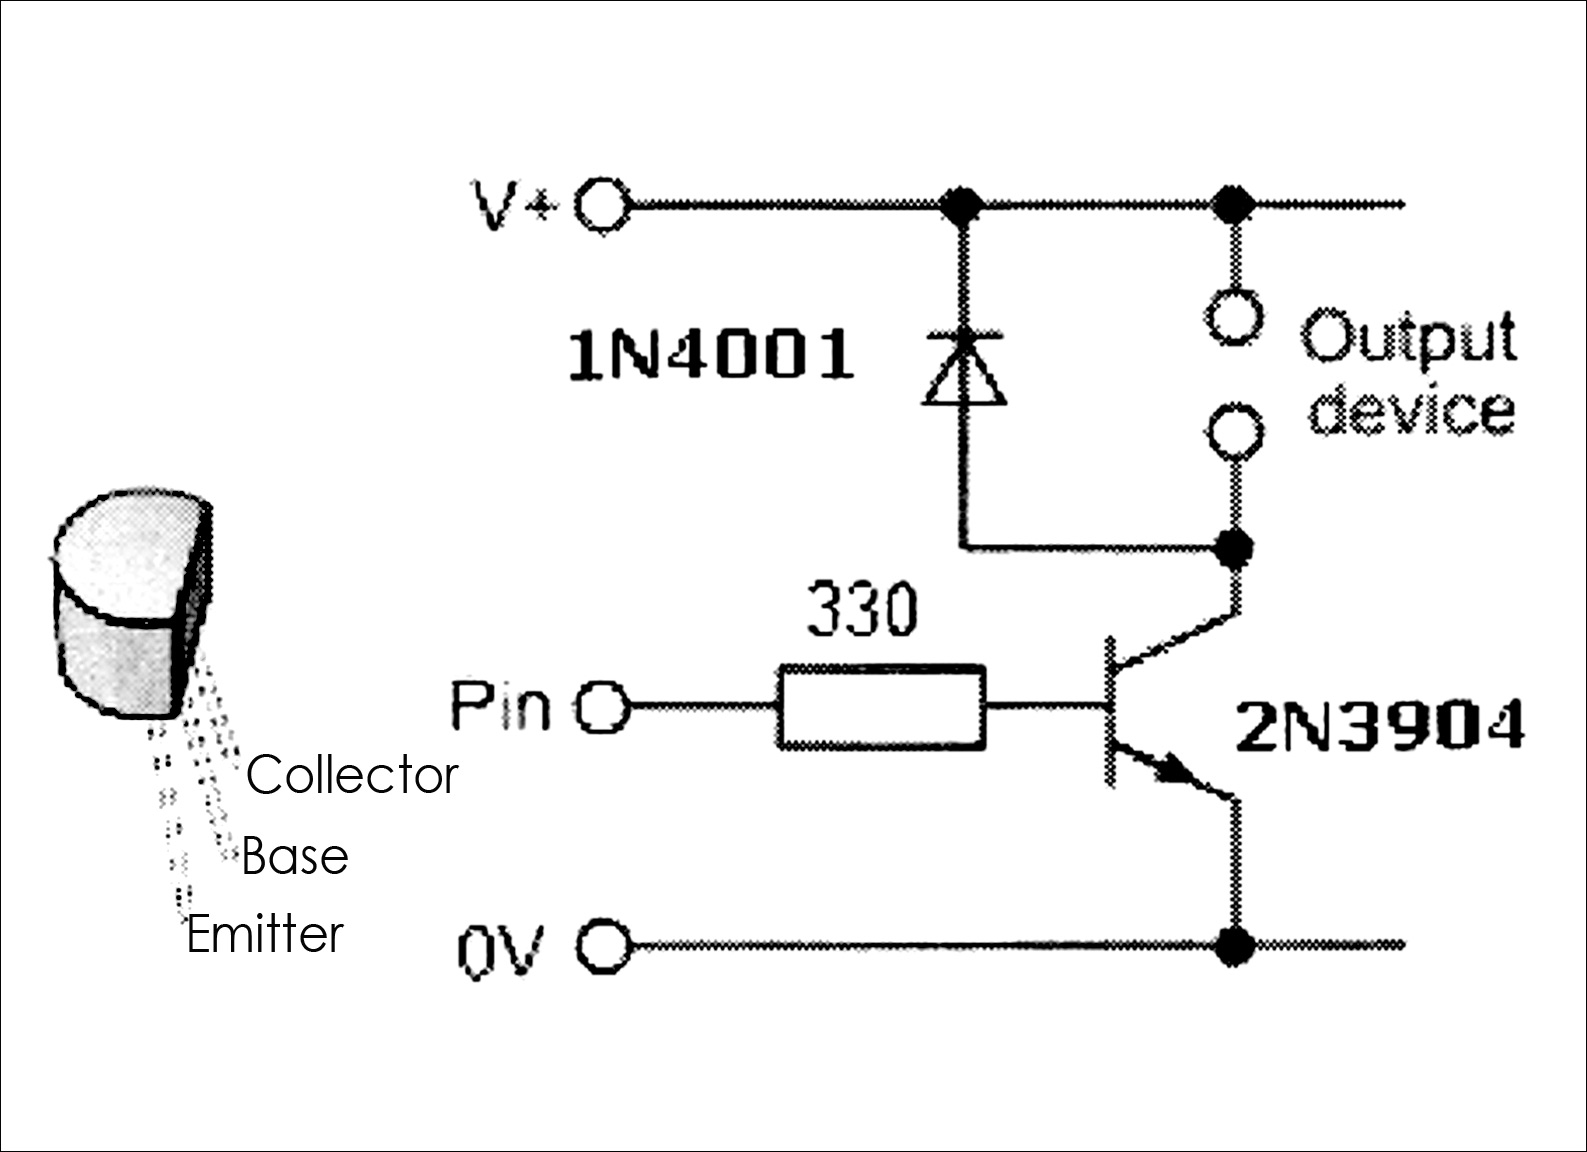 Electronics cchoy: 06 All about Motors/ Interface micro to